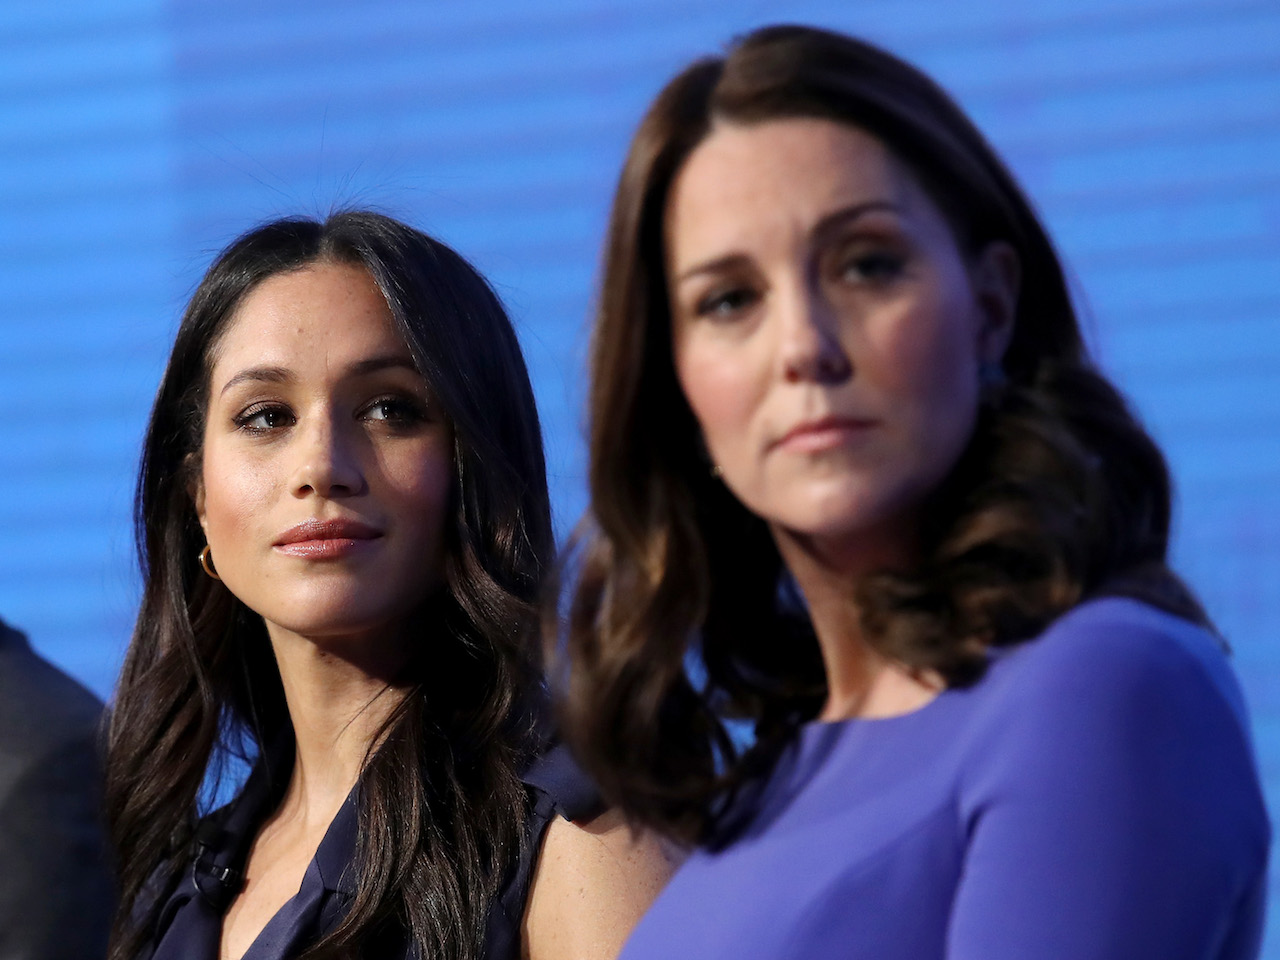 Rumour Has It That Meghan Markle And Kate Middleton 'Hate Each Other's Guts.' Is That Really The Case?